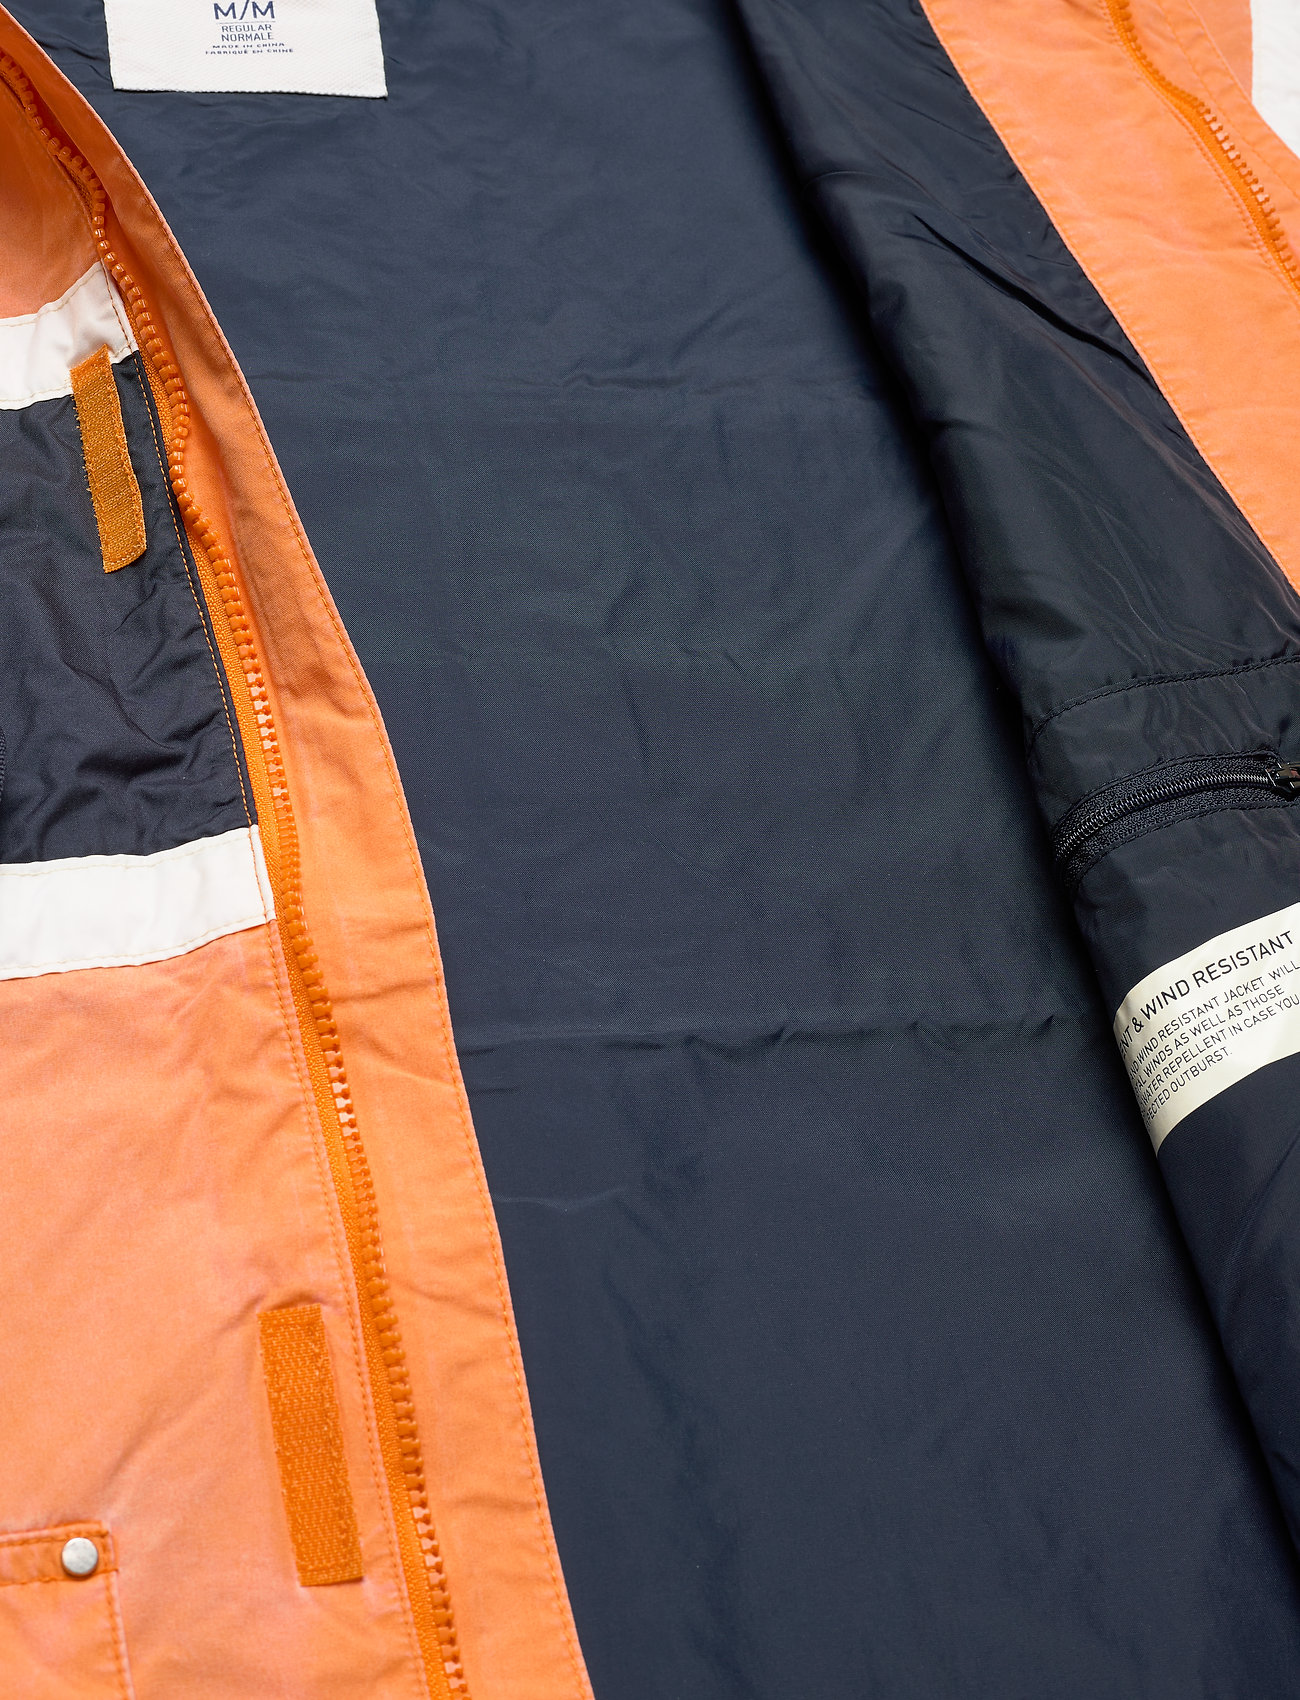 Helly Hansen Hh Salt Heritage Jacket - Jackor & Rockar Orange Peel